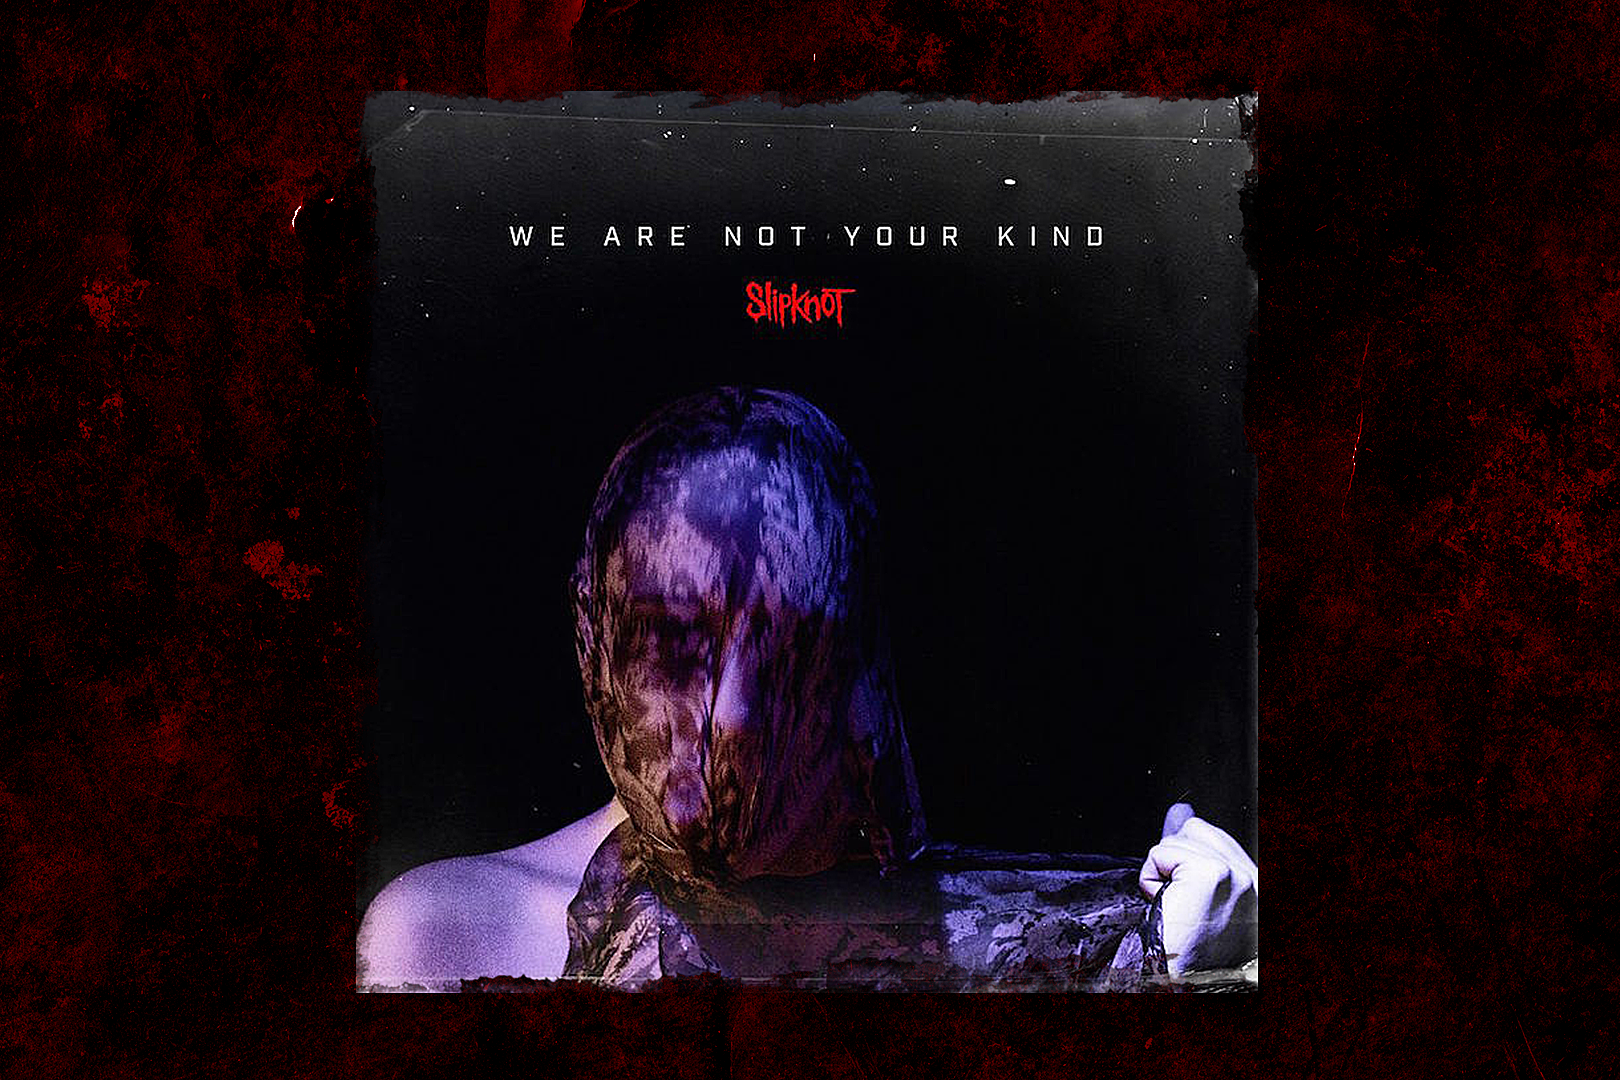 Review: Slipknot's 'We Are Not Your Kind' Full of Experimentation